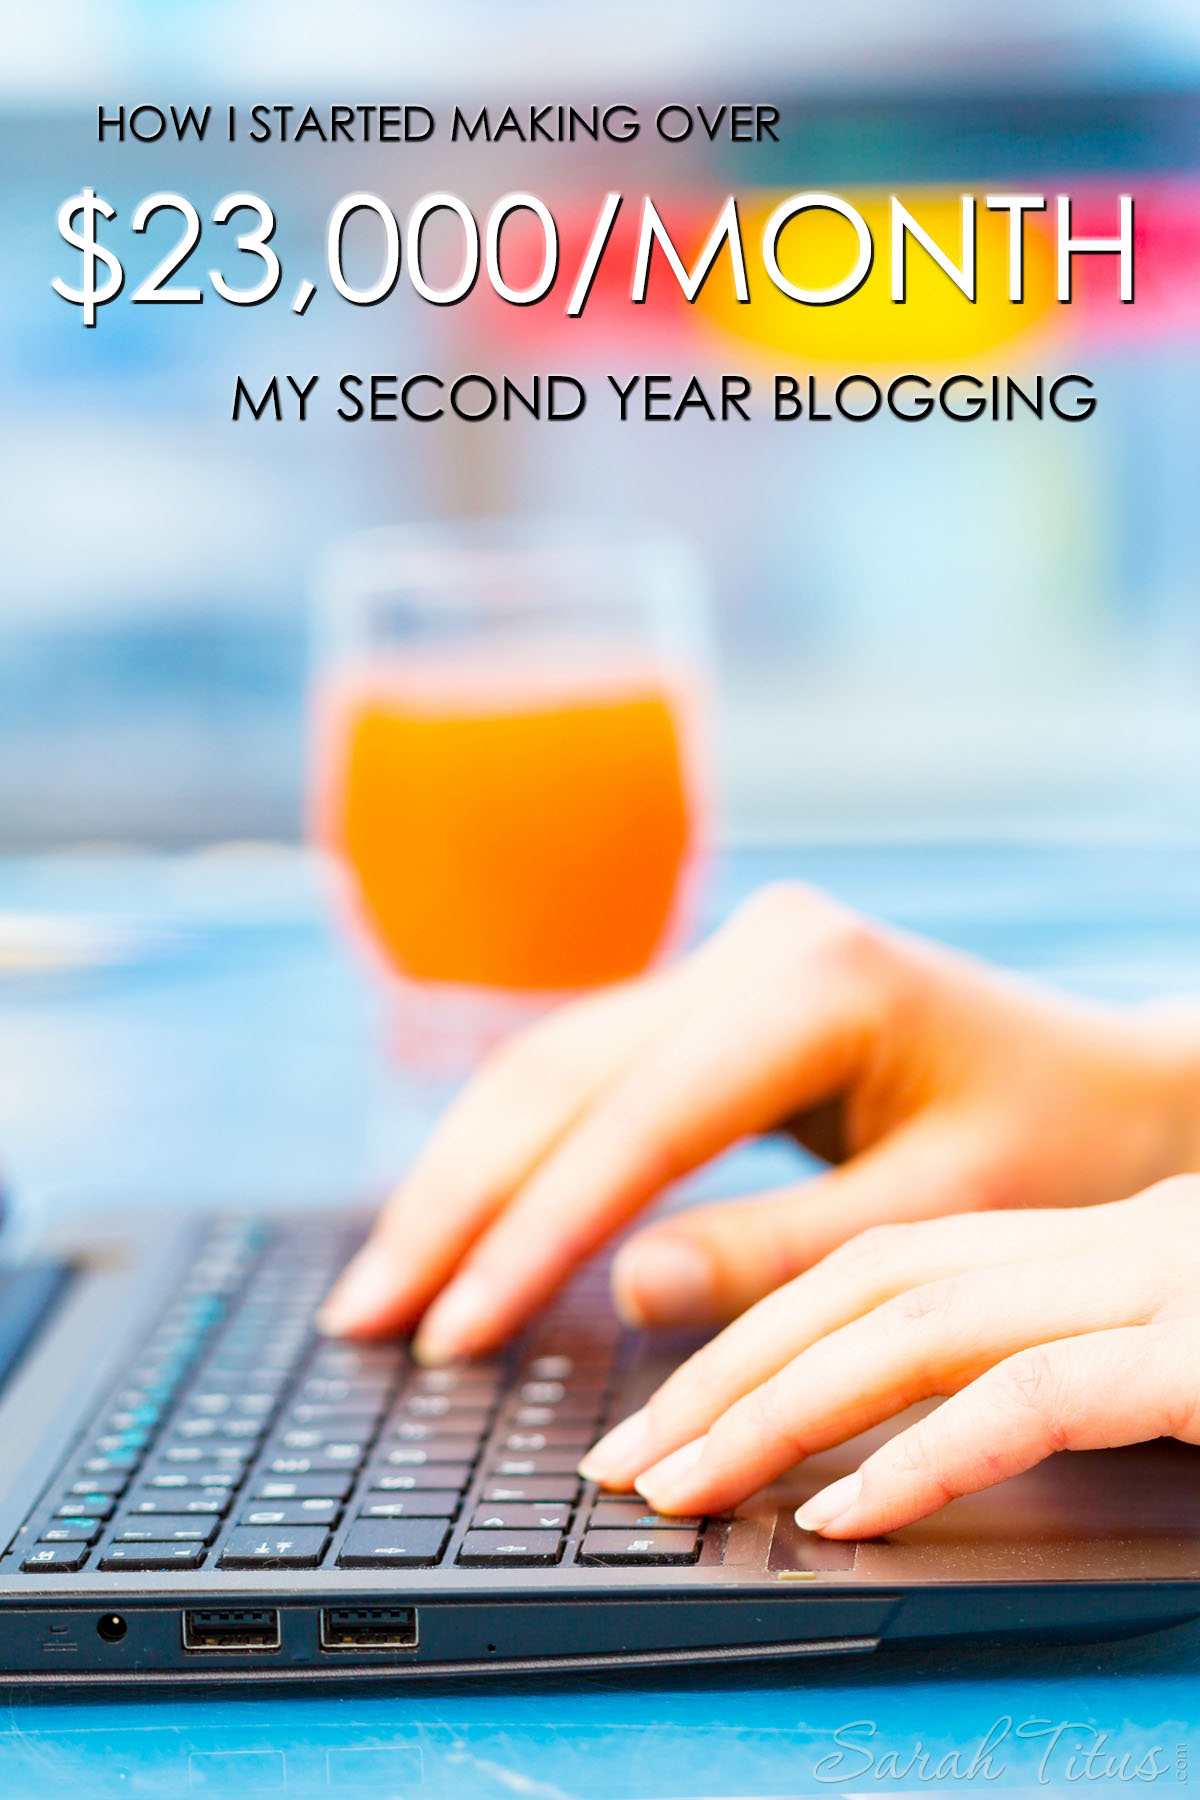 How I Started Making Over $23,000 My Second Year Blogging